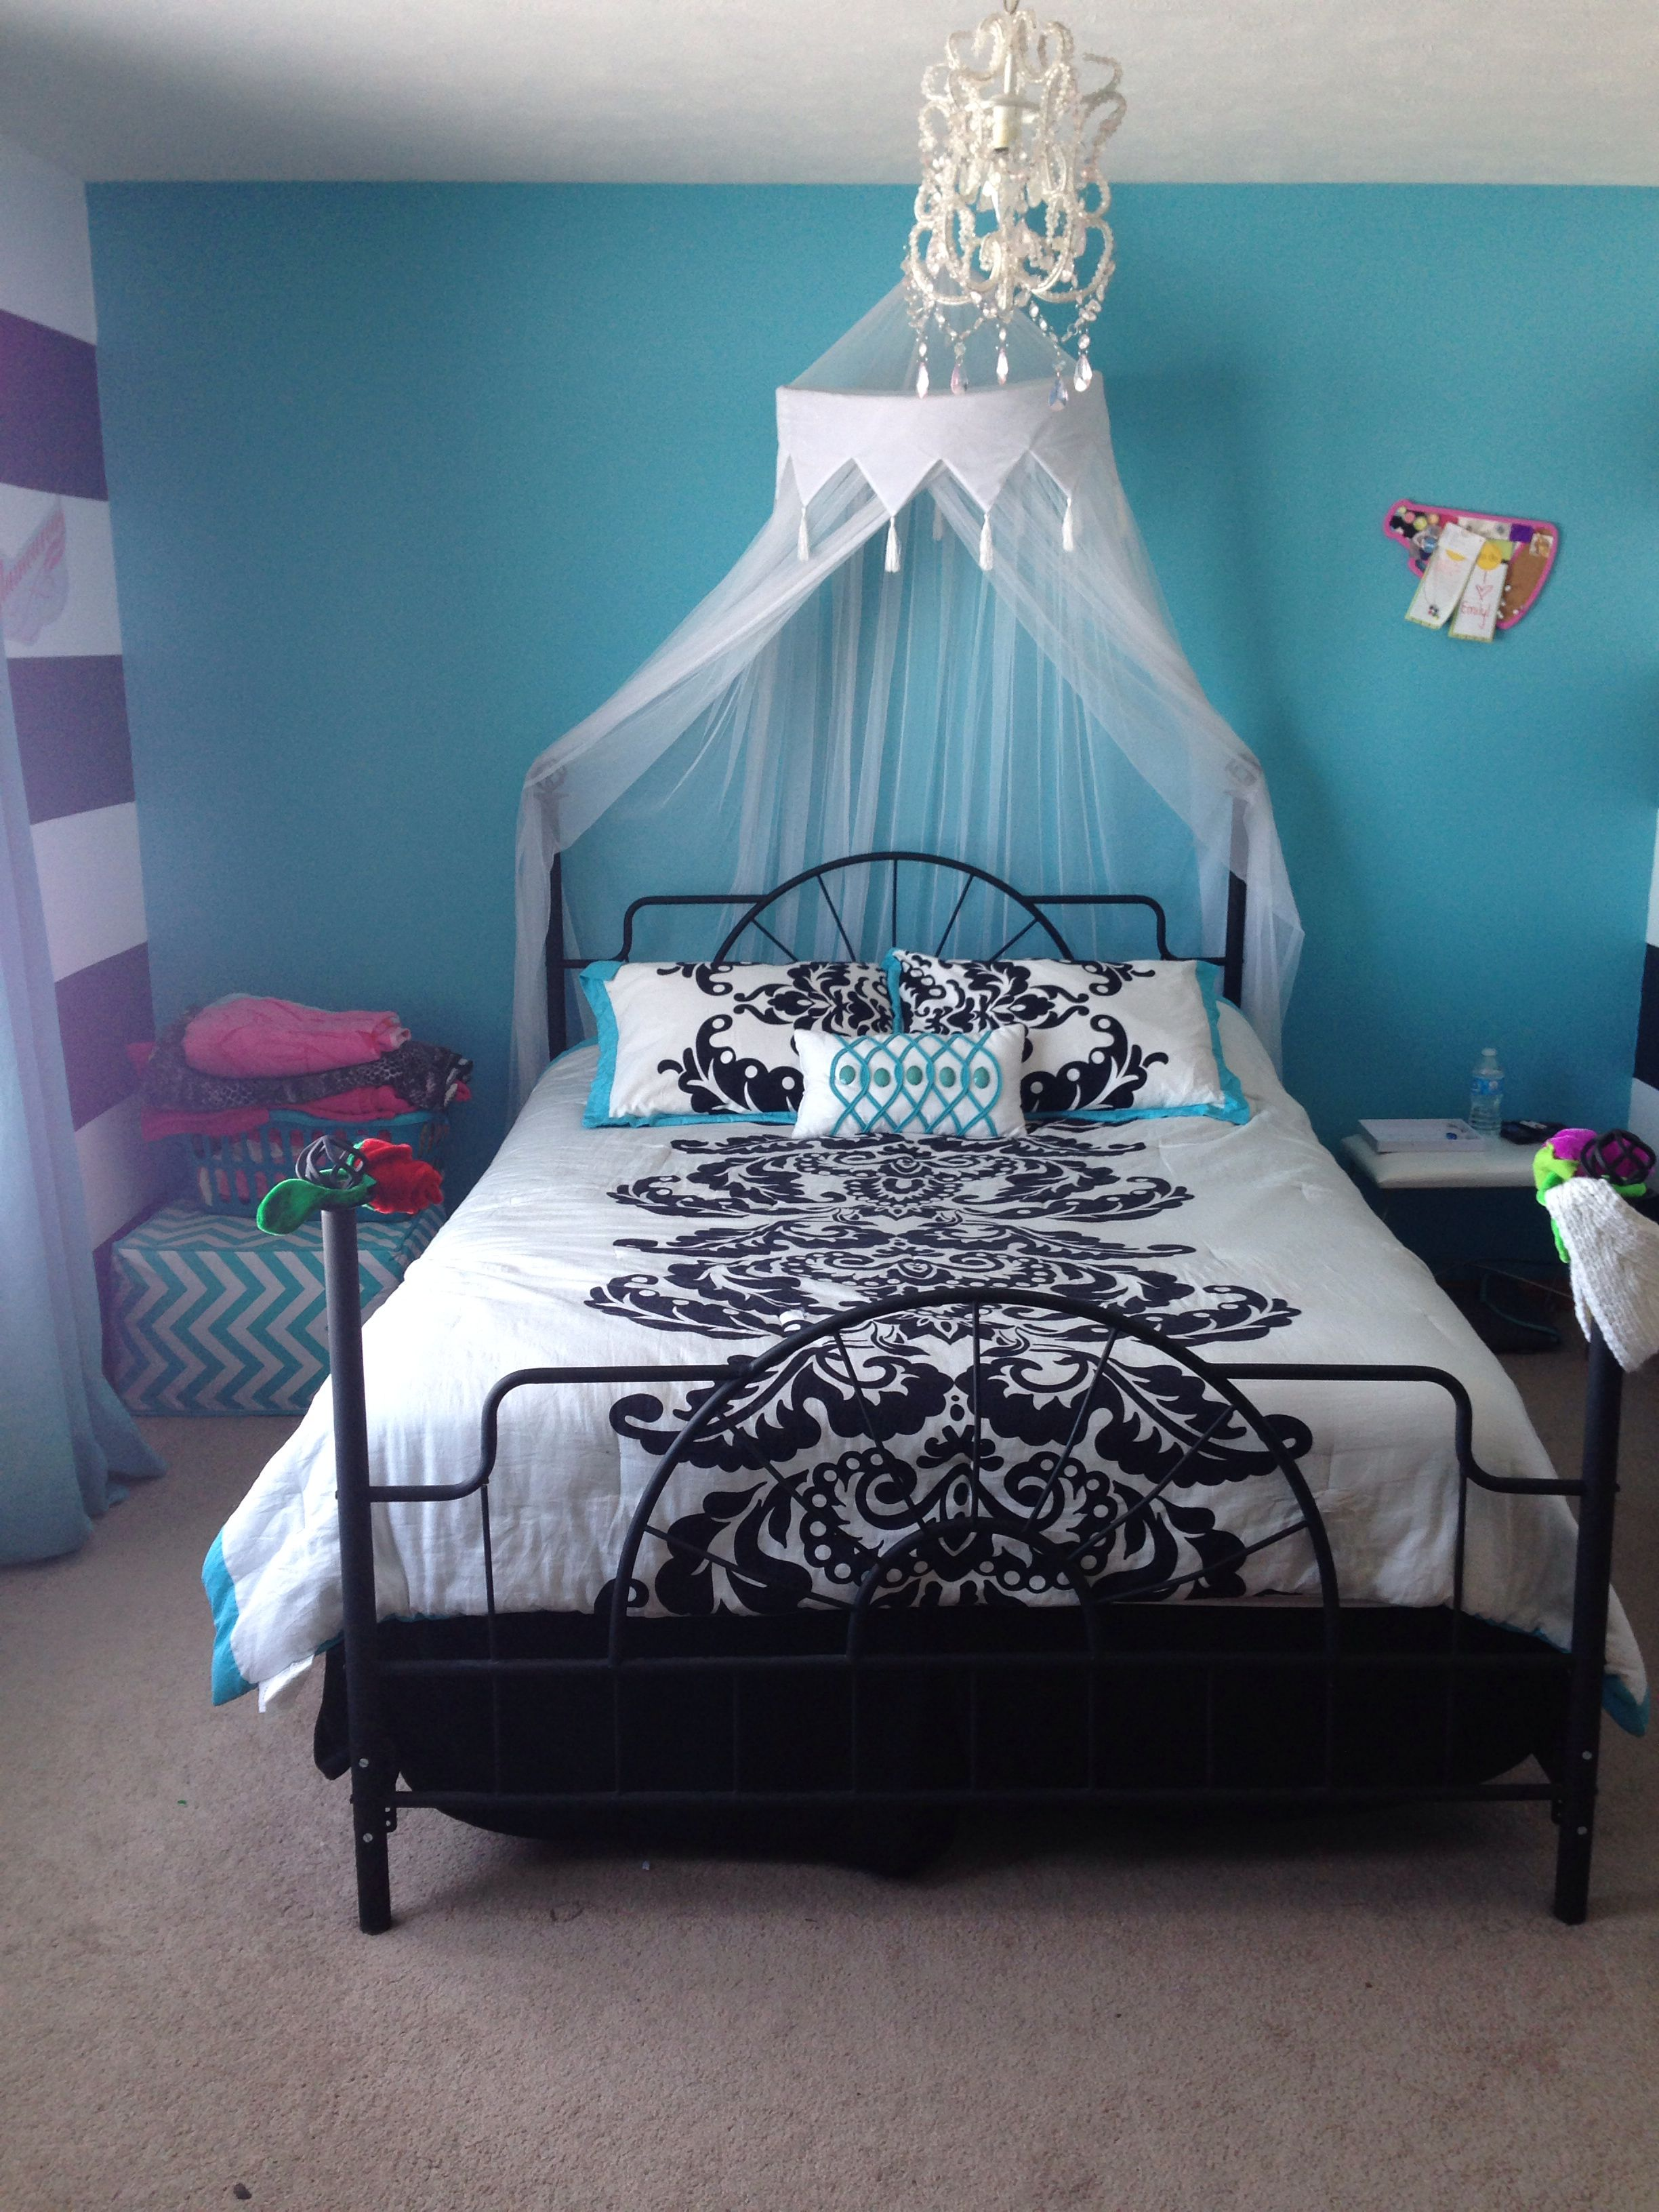 decorate teen bedroom Monster themes